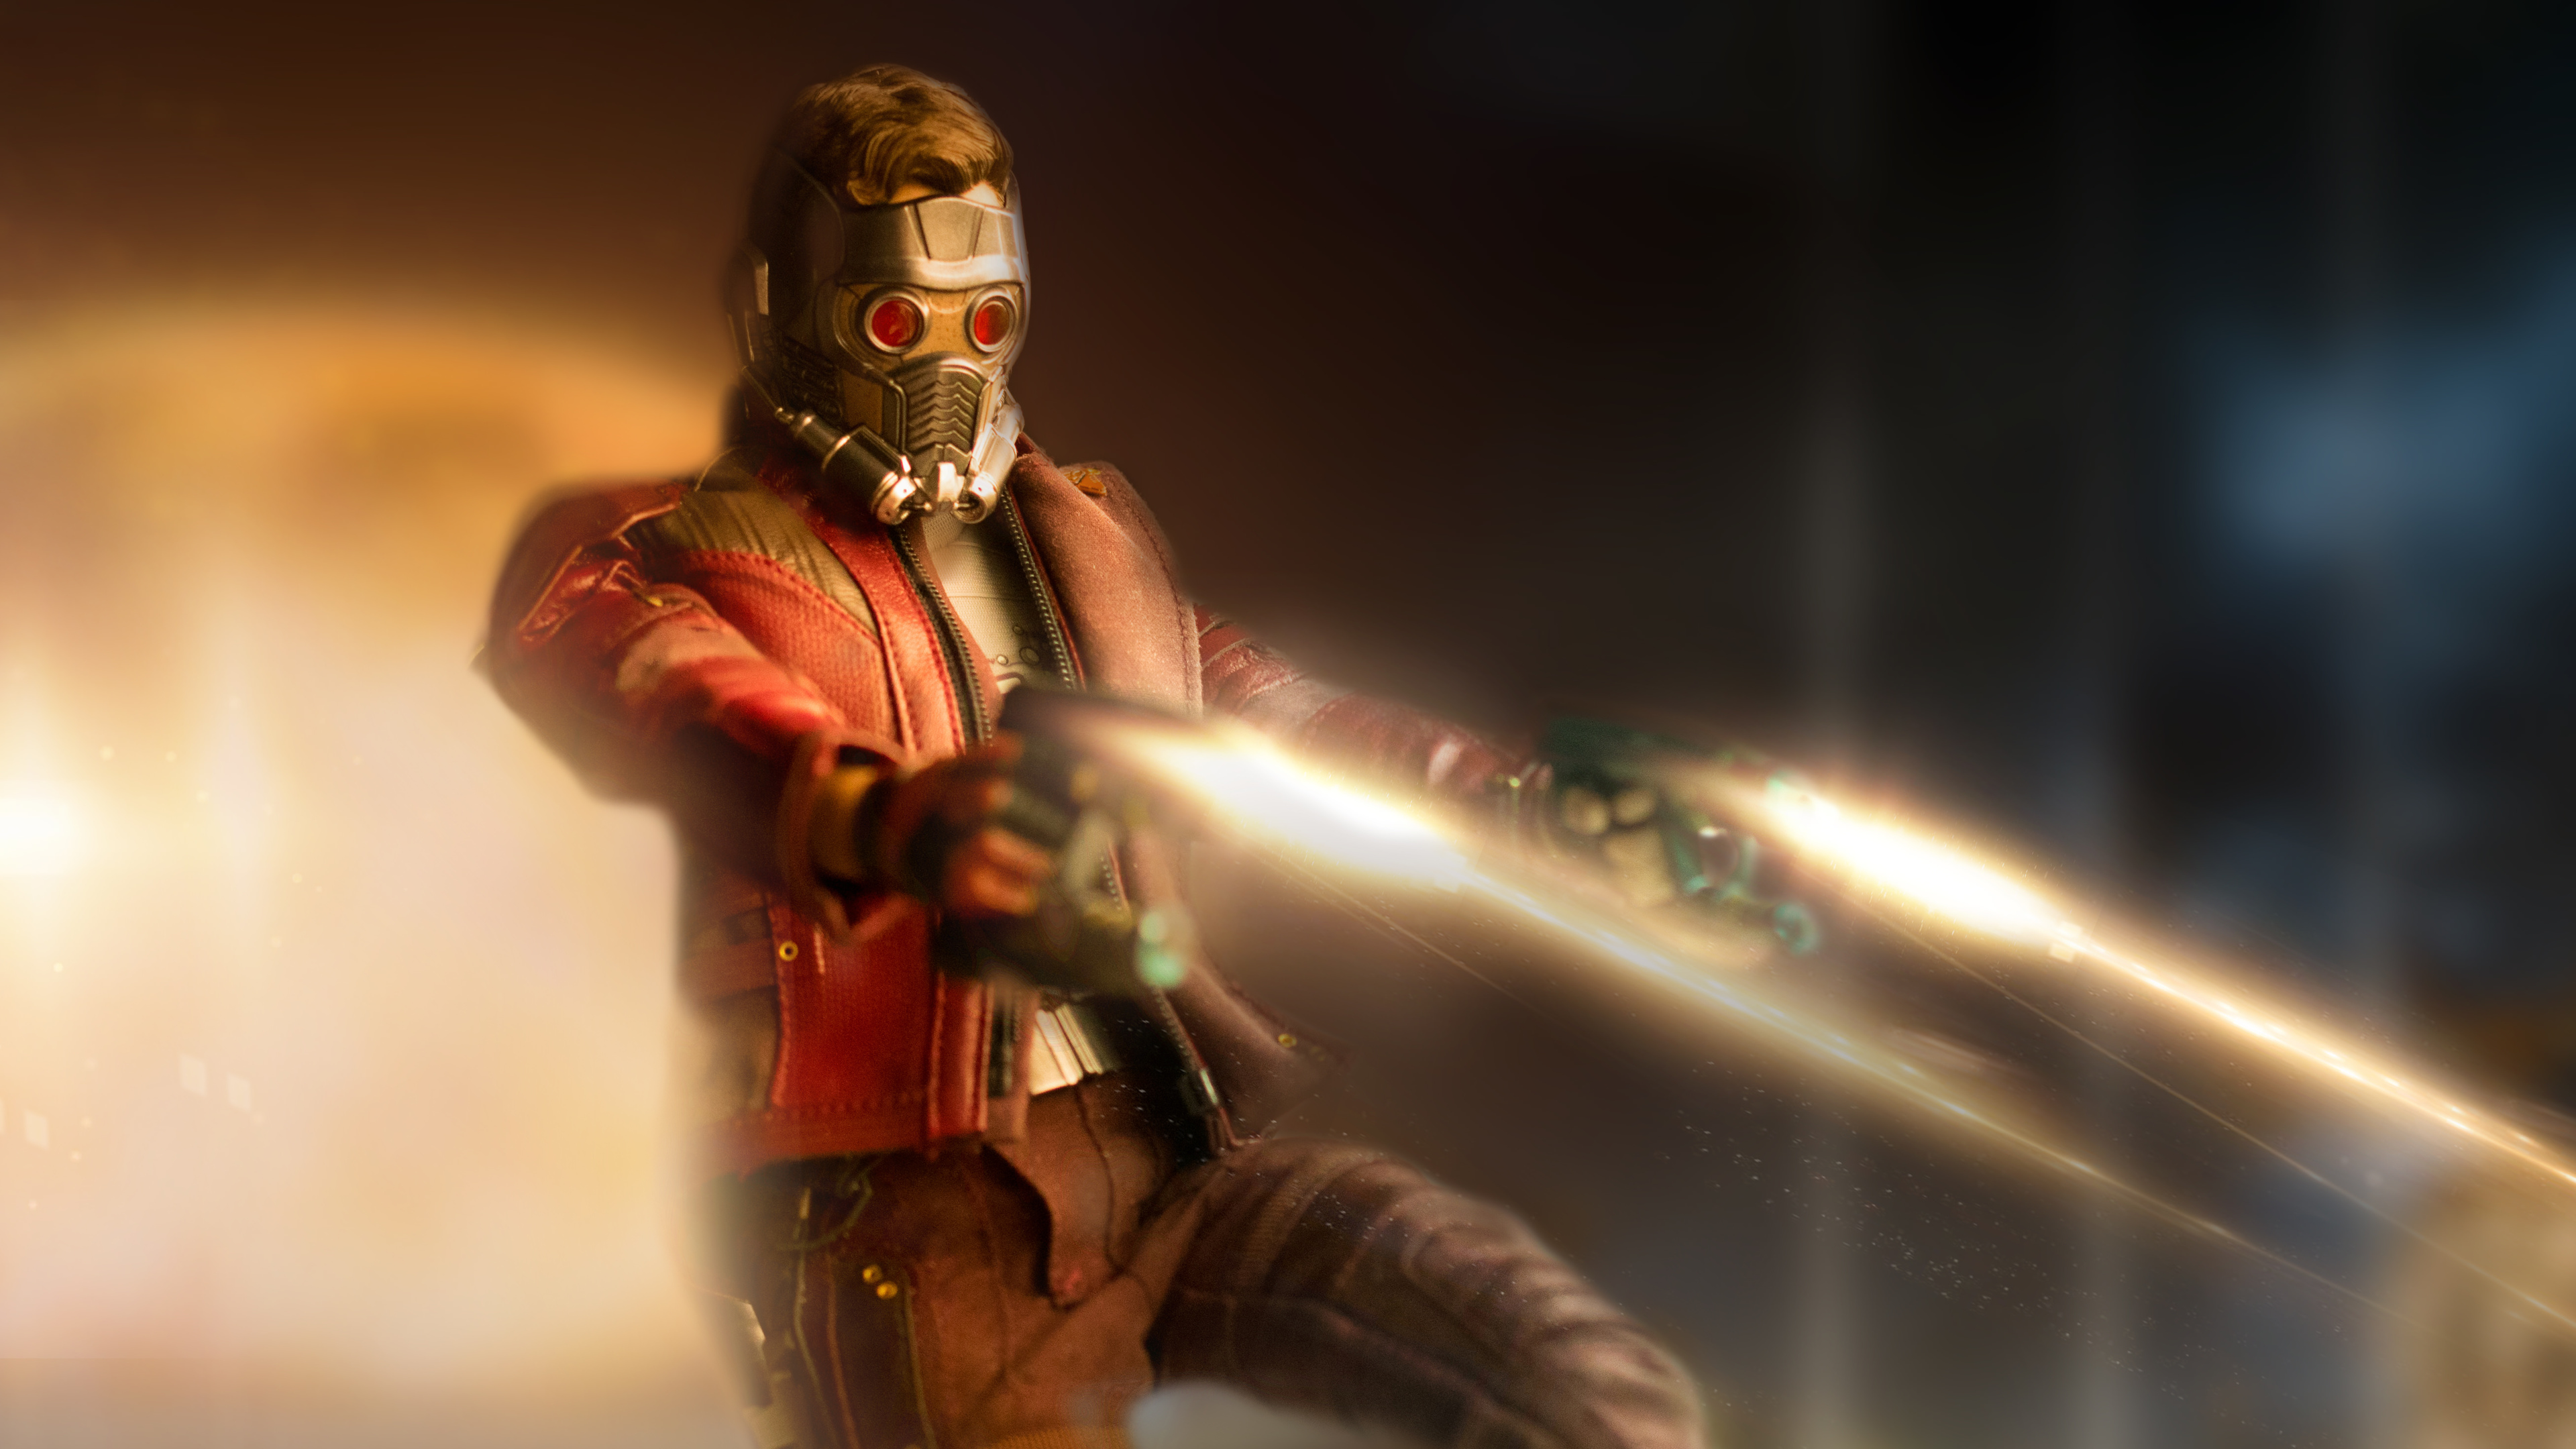 star lord 1536522650 - Star Lord - superheroes wallpapers, star lord wallpapers, hd-wallpapers, 5k wallpapers, 4k-wallpapers